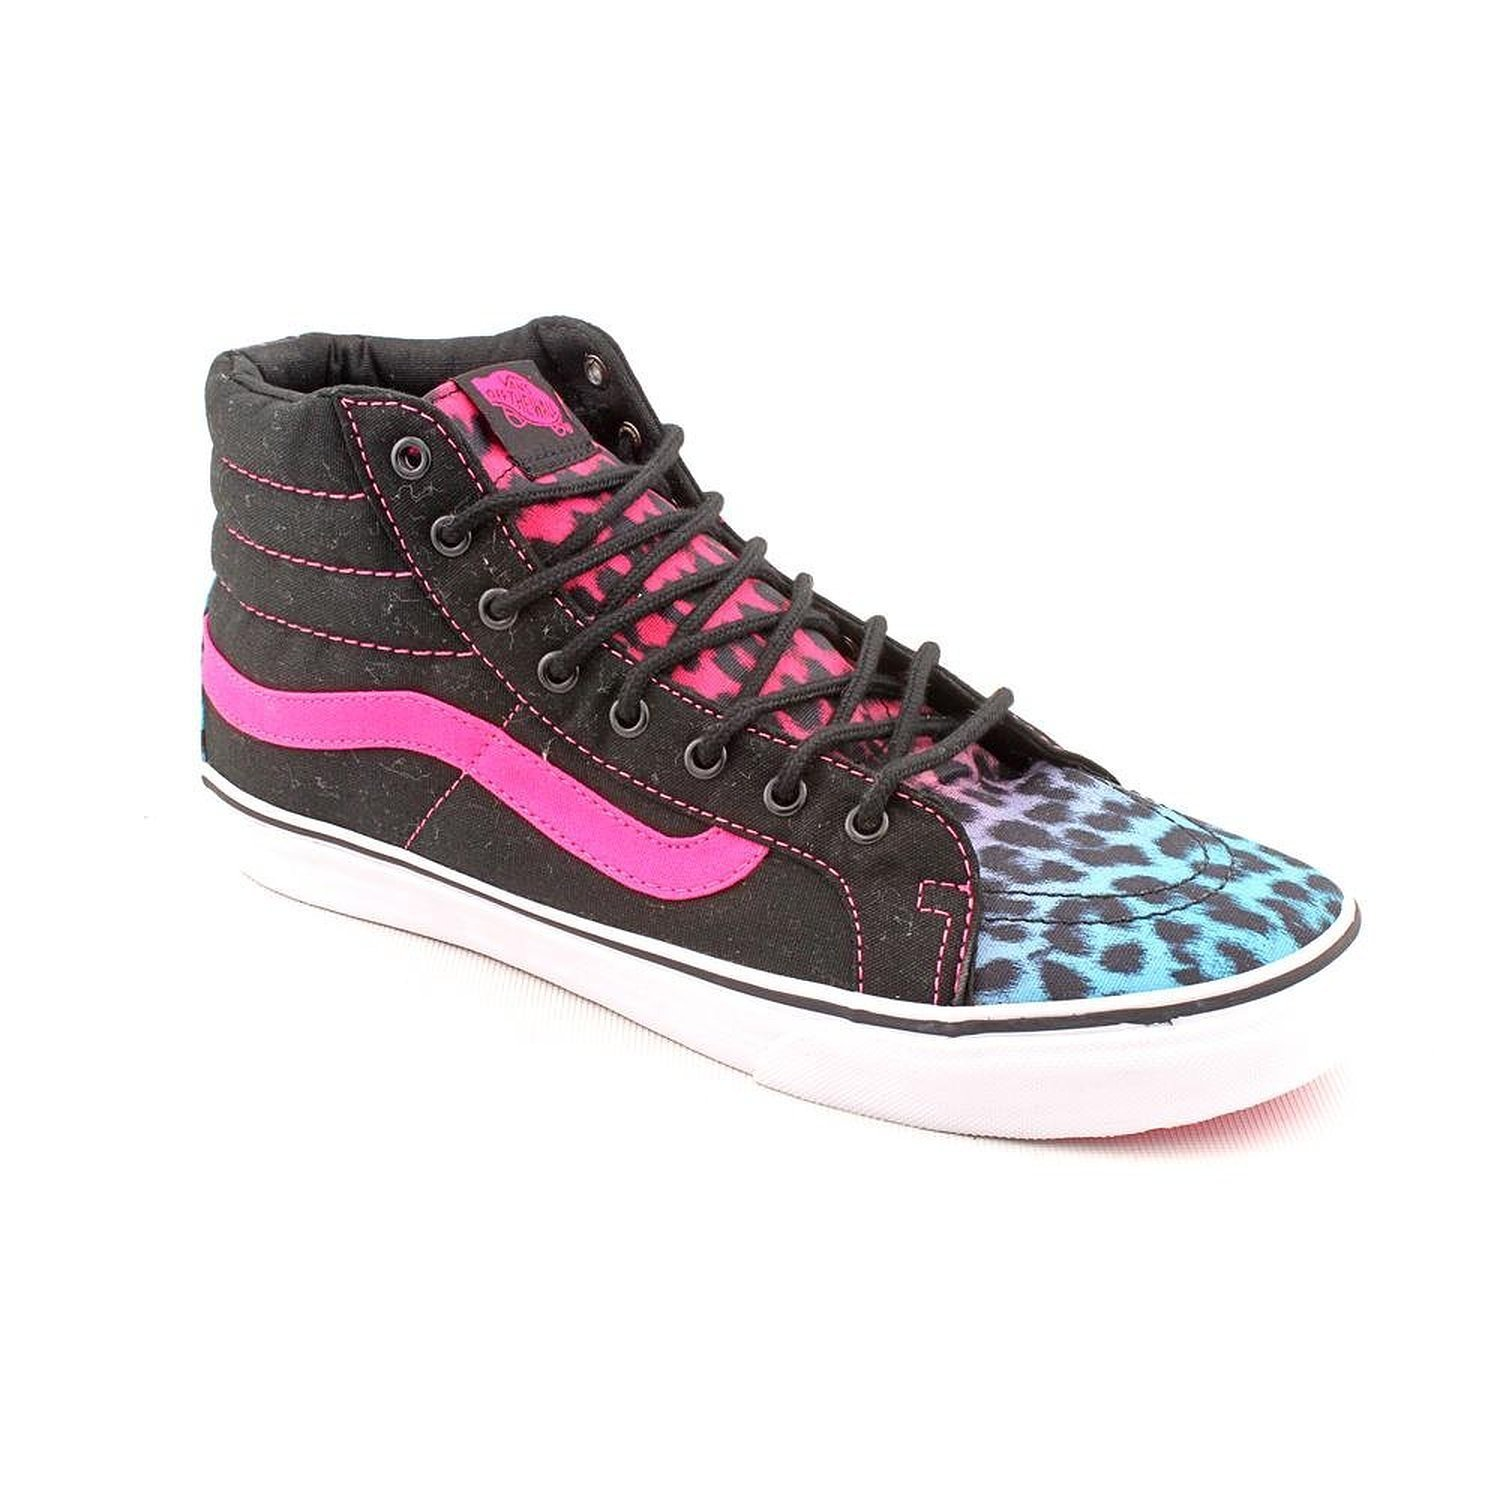 ac350bb2760e Get Quotations · Vans Womens Sk8-Hi Slim Leopard Magenta Blue Black  Skateboarding Shoes 5 B(M